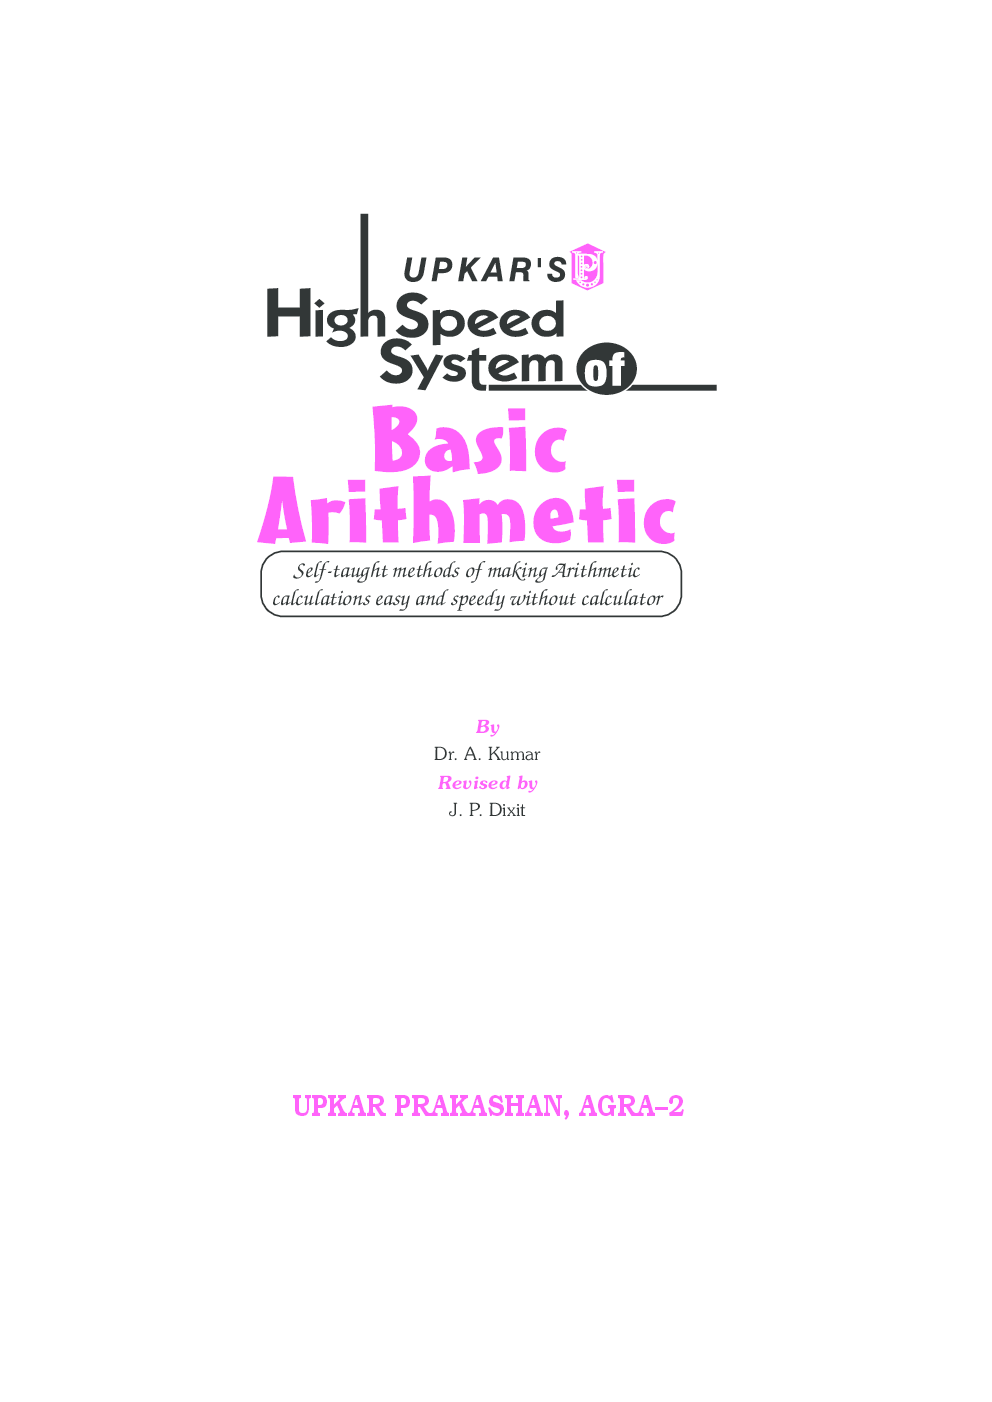 High Speed System of Basic Arithmetic - Page 2